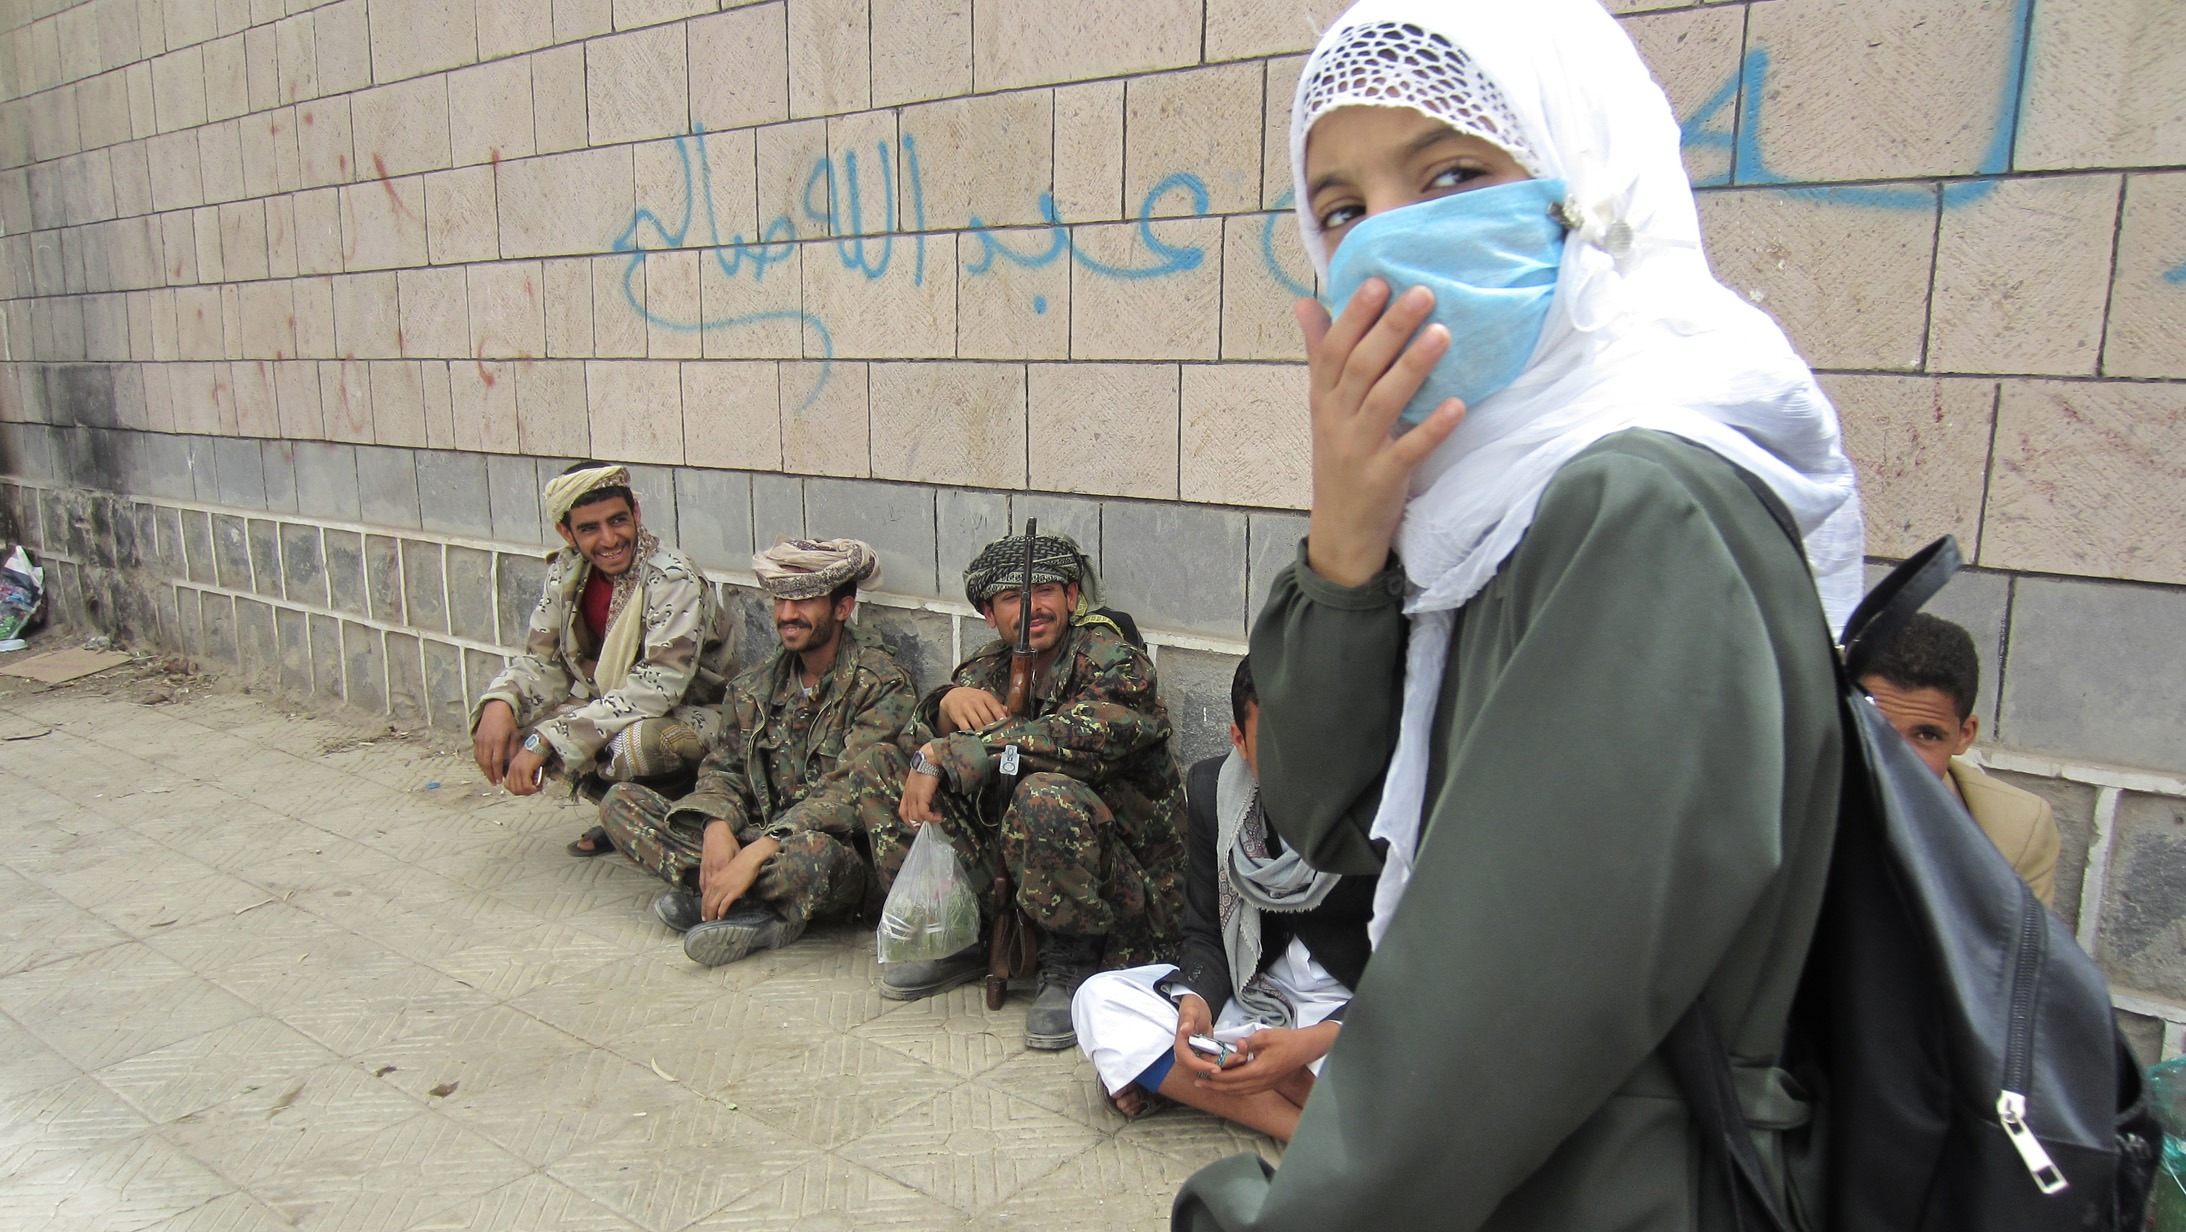 A girl student leaves al-Furadh School at the end of the day in Yemen. Soldiers relax and chew qat outside the school walls. They lived in third-floor classrooms for several months, students and teachers said.